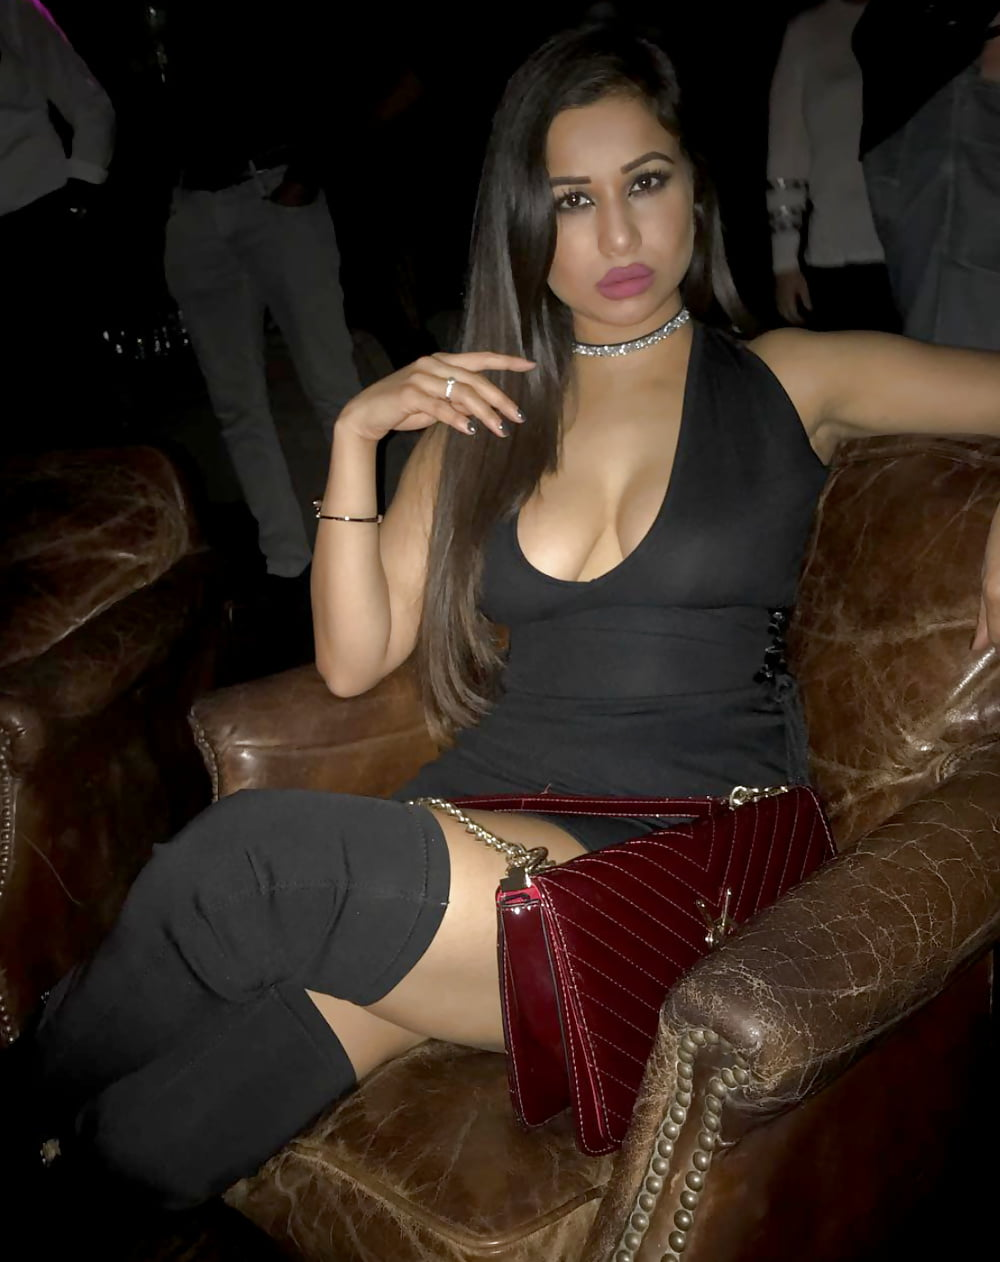 Sexy Girl Paki indian Hottes Ledis Night 7 - Sexy Girl Paki indian Hottes Ledis Night